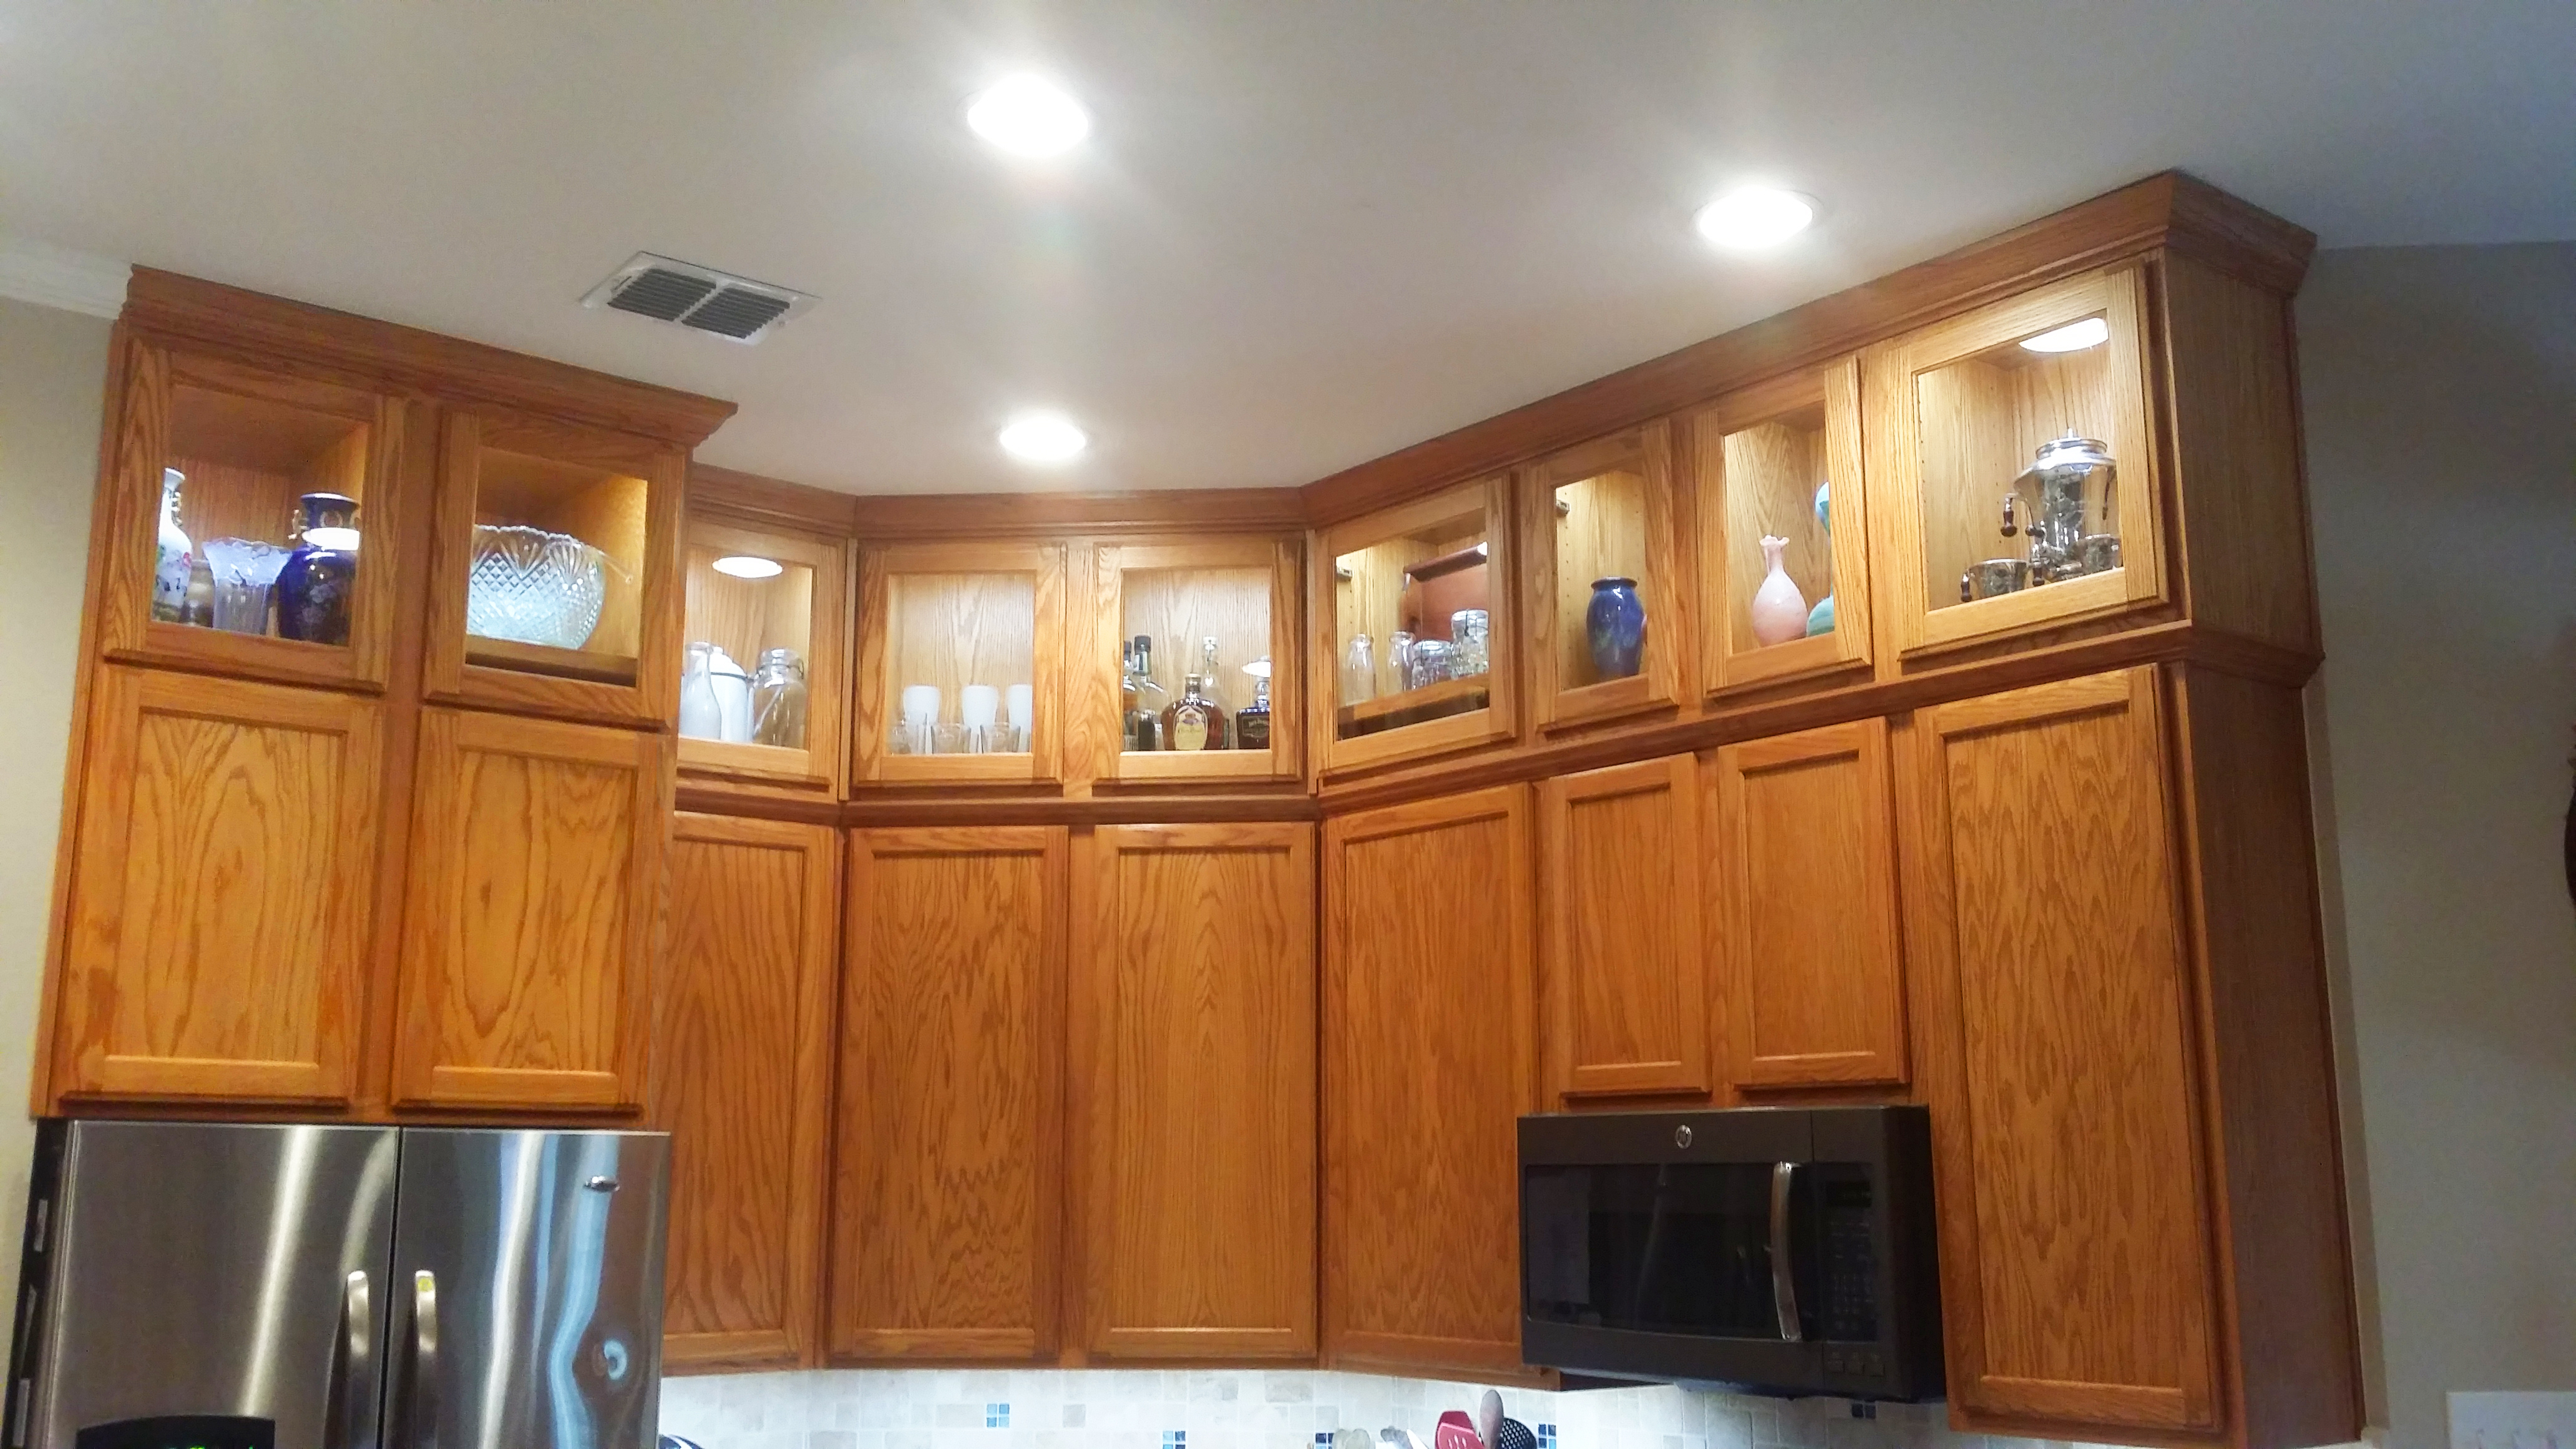 kitchen cabinets 2 install kitchen cabinets A Stylish Cabinet Installation Transforms a Dated Kitchen